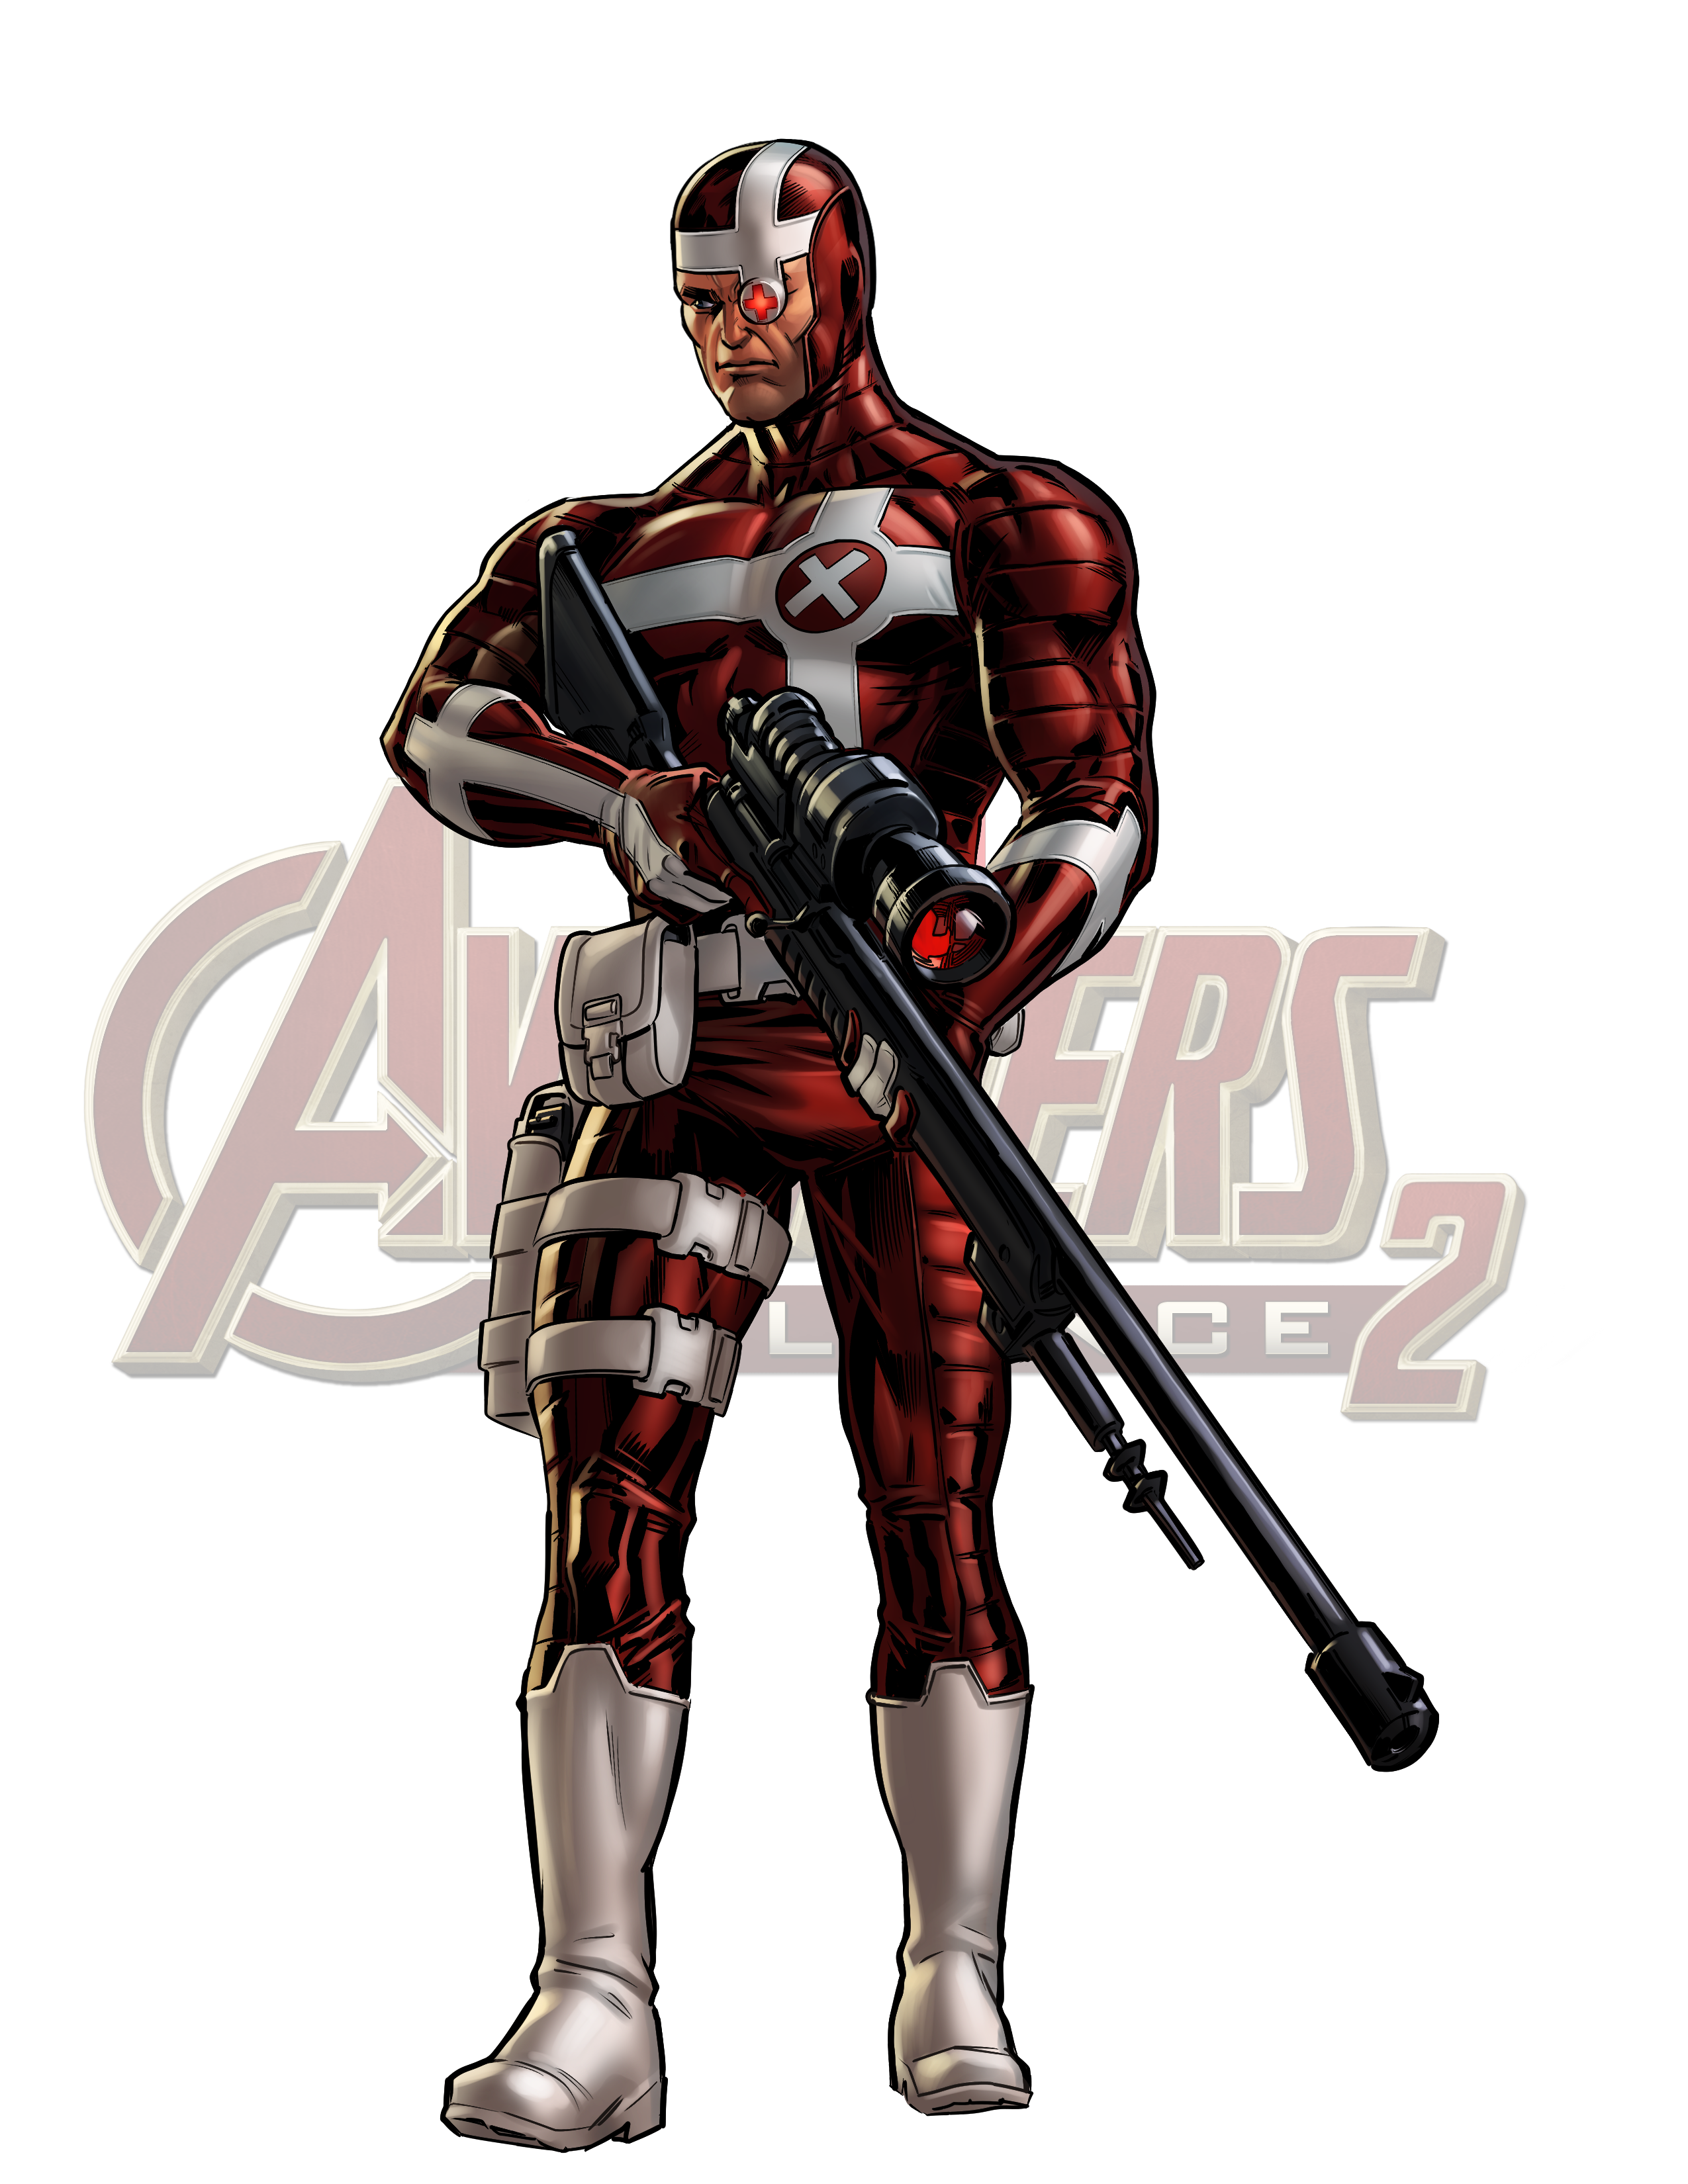 Weapon drawing avengers. Maa crossfire logo png